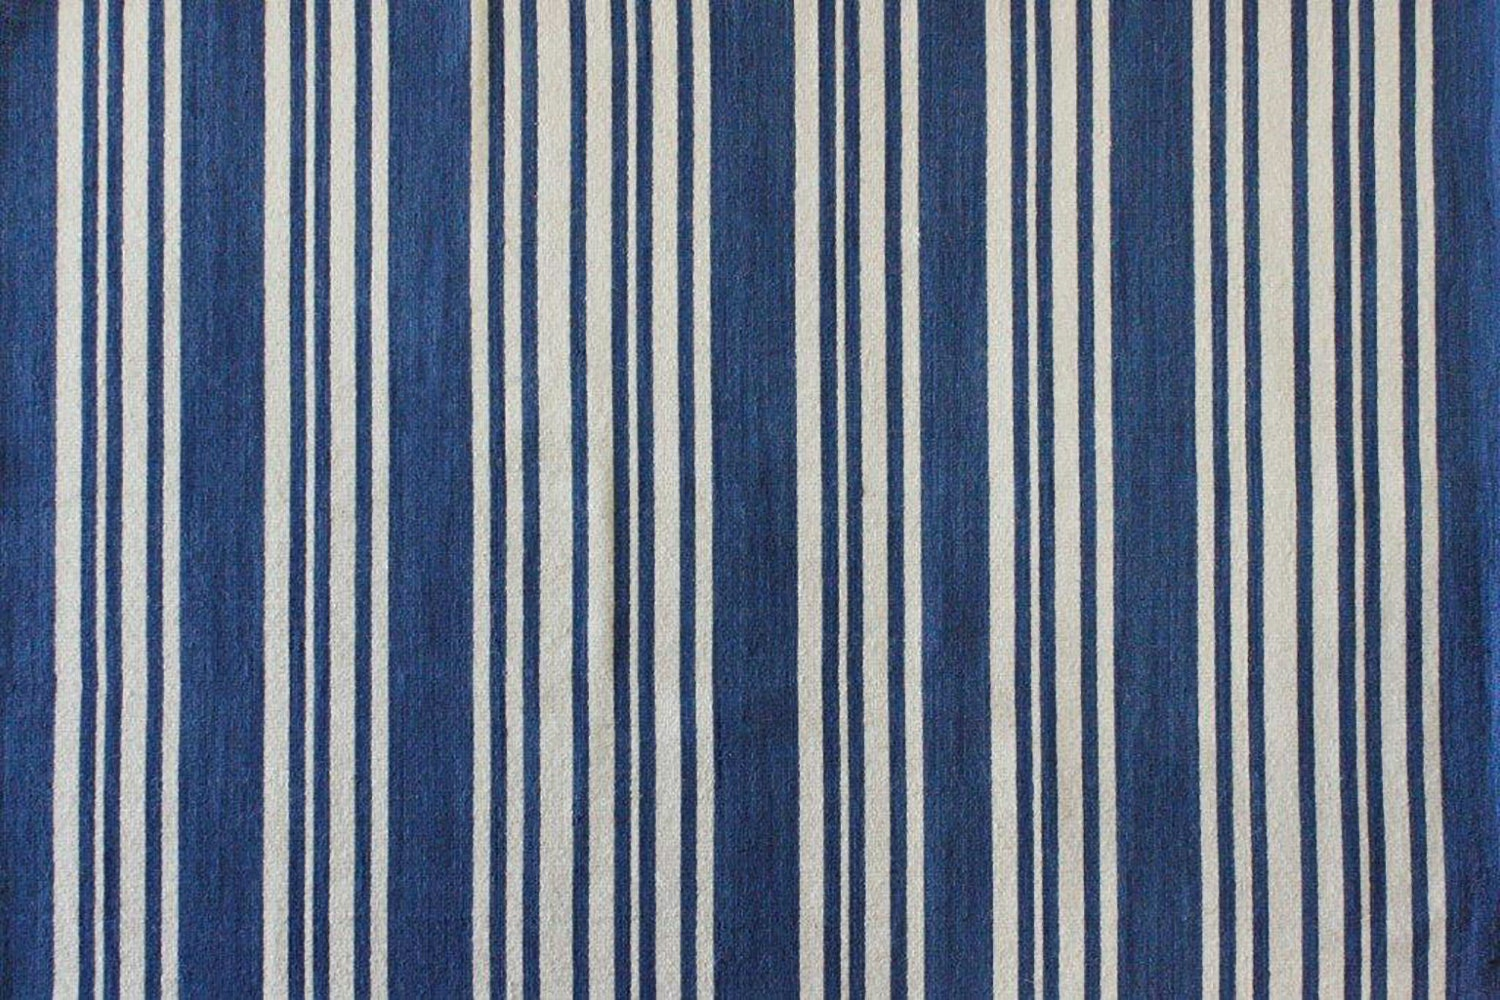 Newport Stripe Floor Rug -  Marine Blue